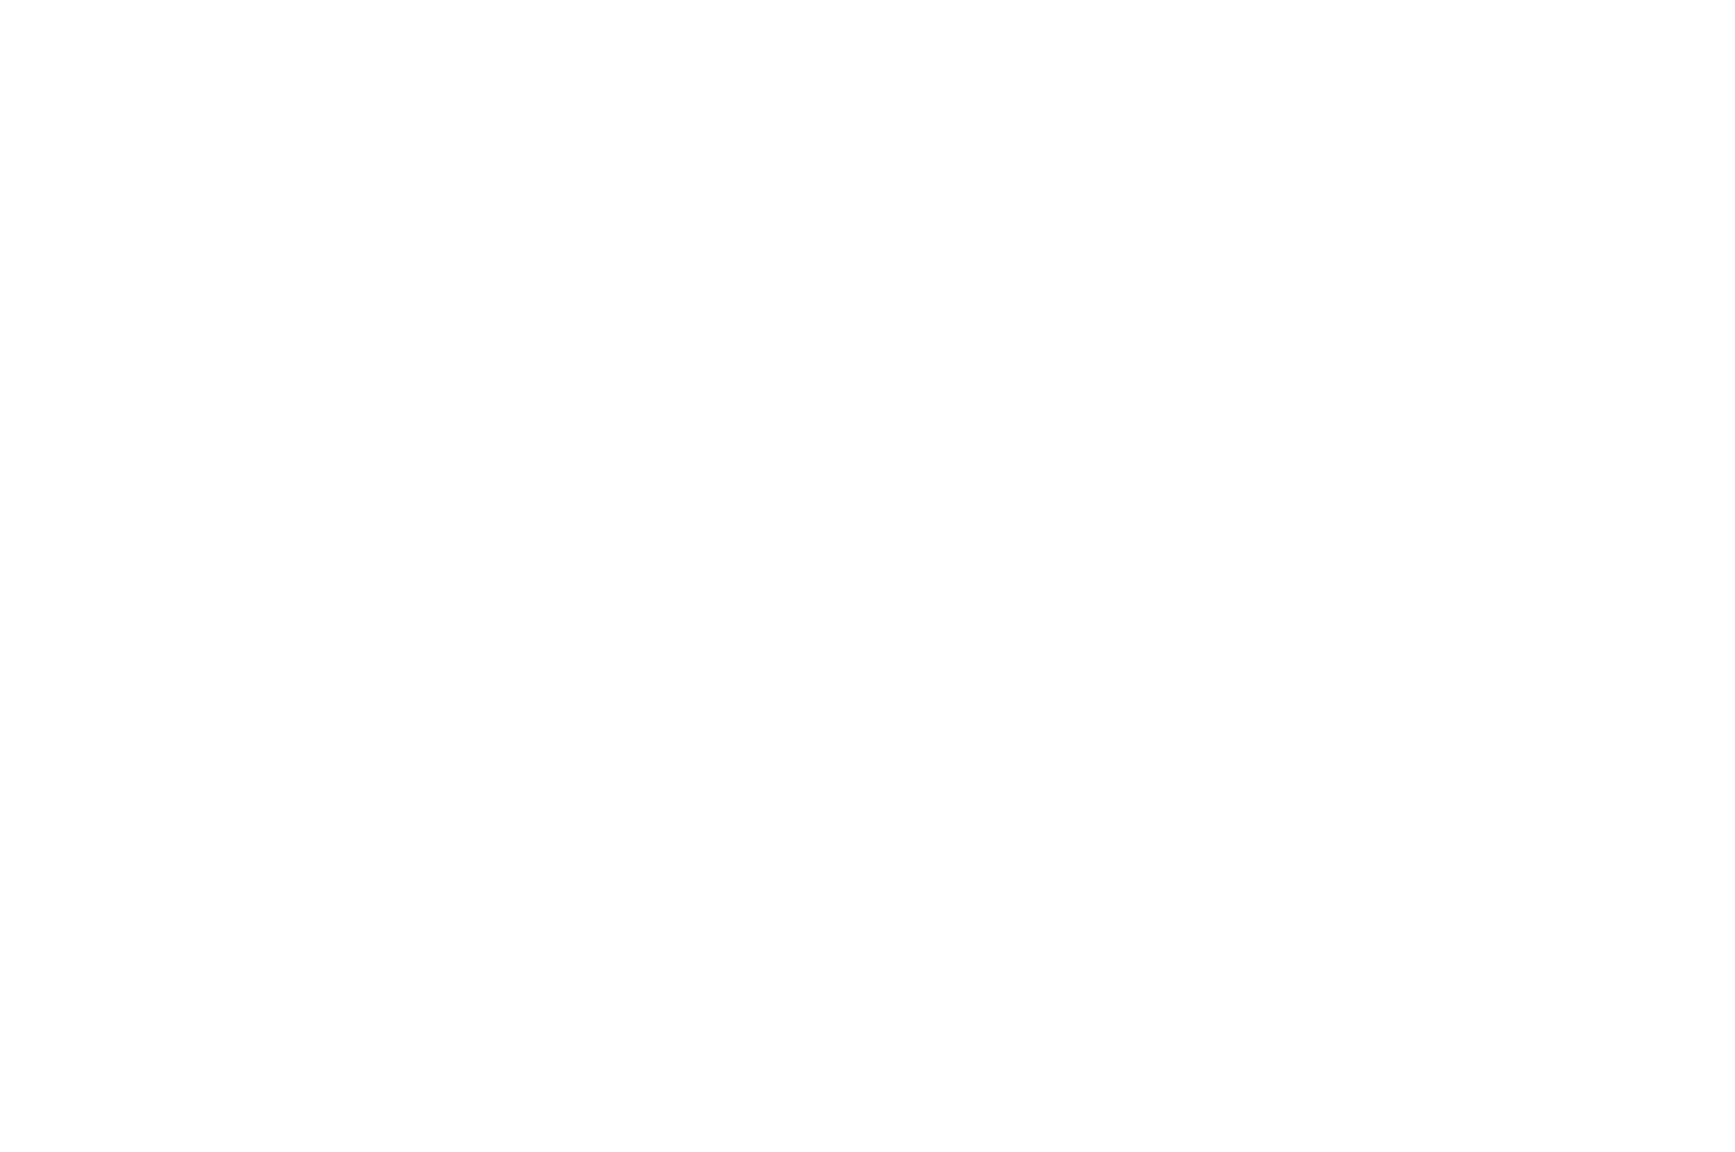 OFFICIAL SELECTION - LIIFE - The Long Island International Film Expo - 2019.png